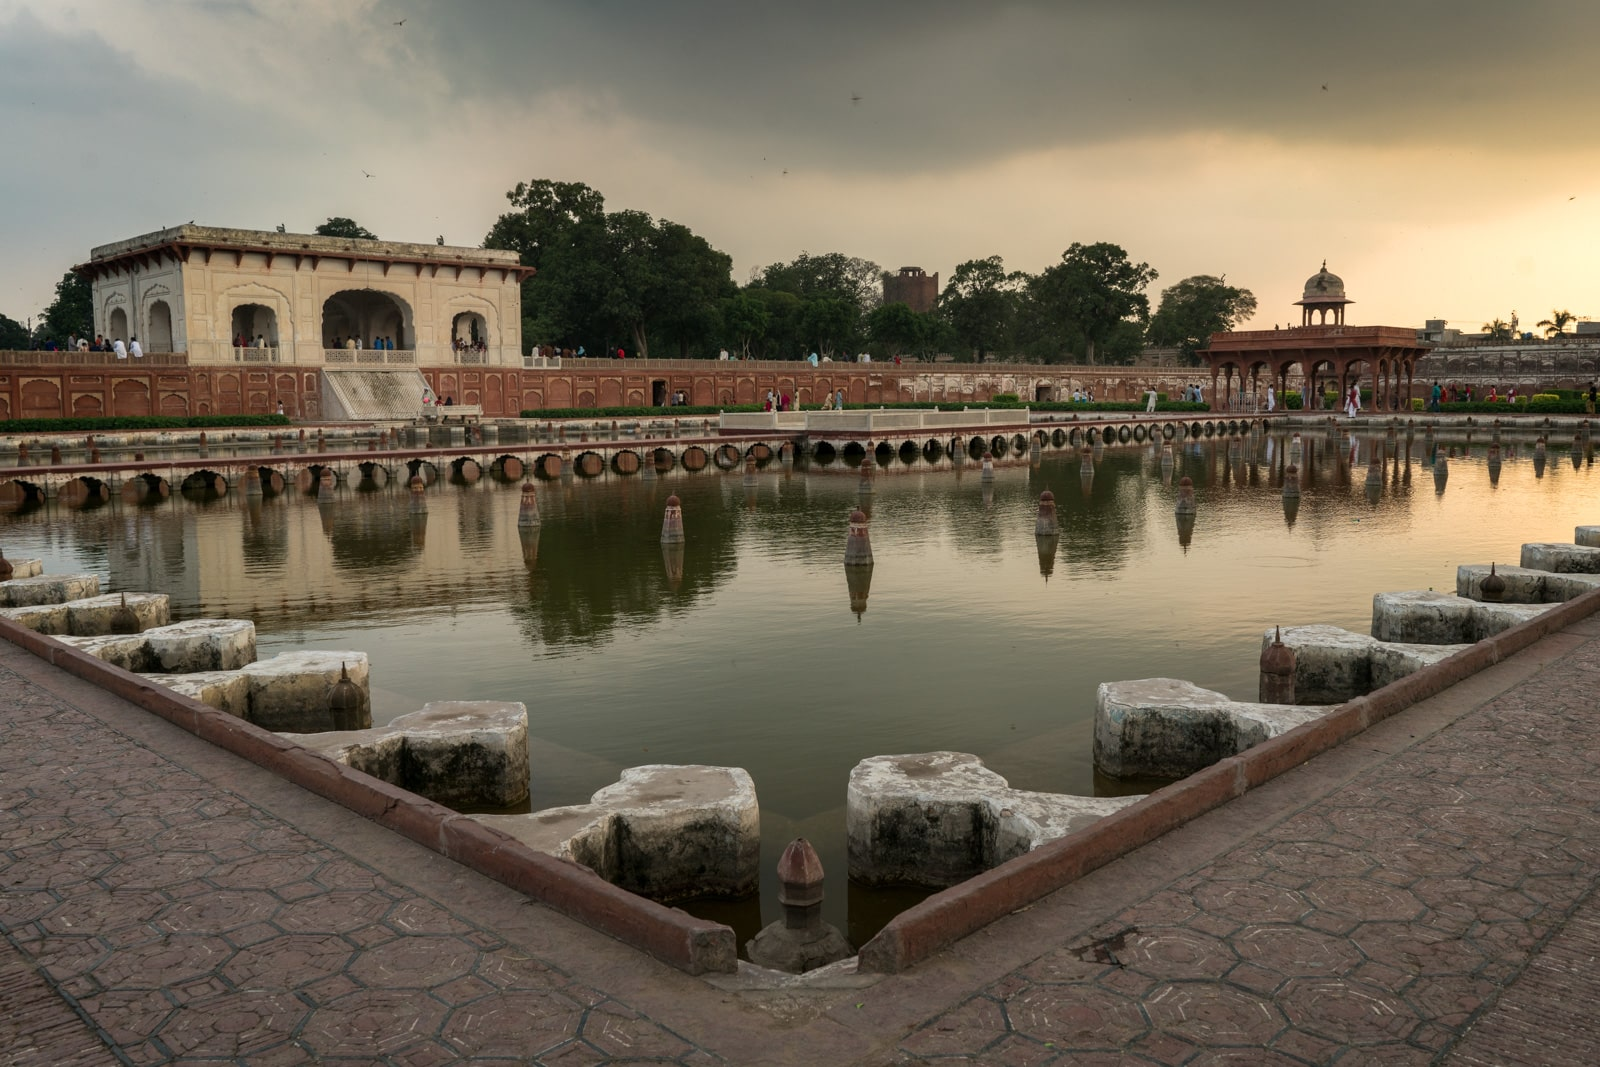 Unique things to do in Lahore - Sunset over Shalimar Gardens, Mughal gardens in Lahore, Pakistan